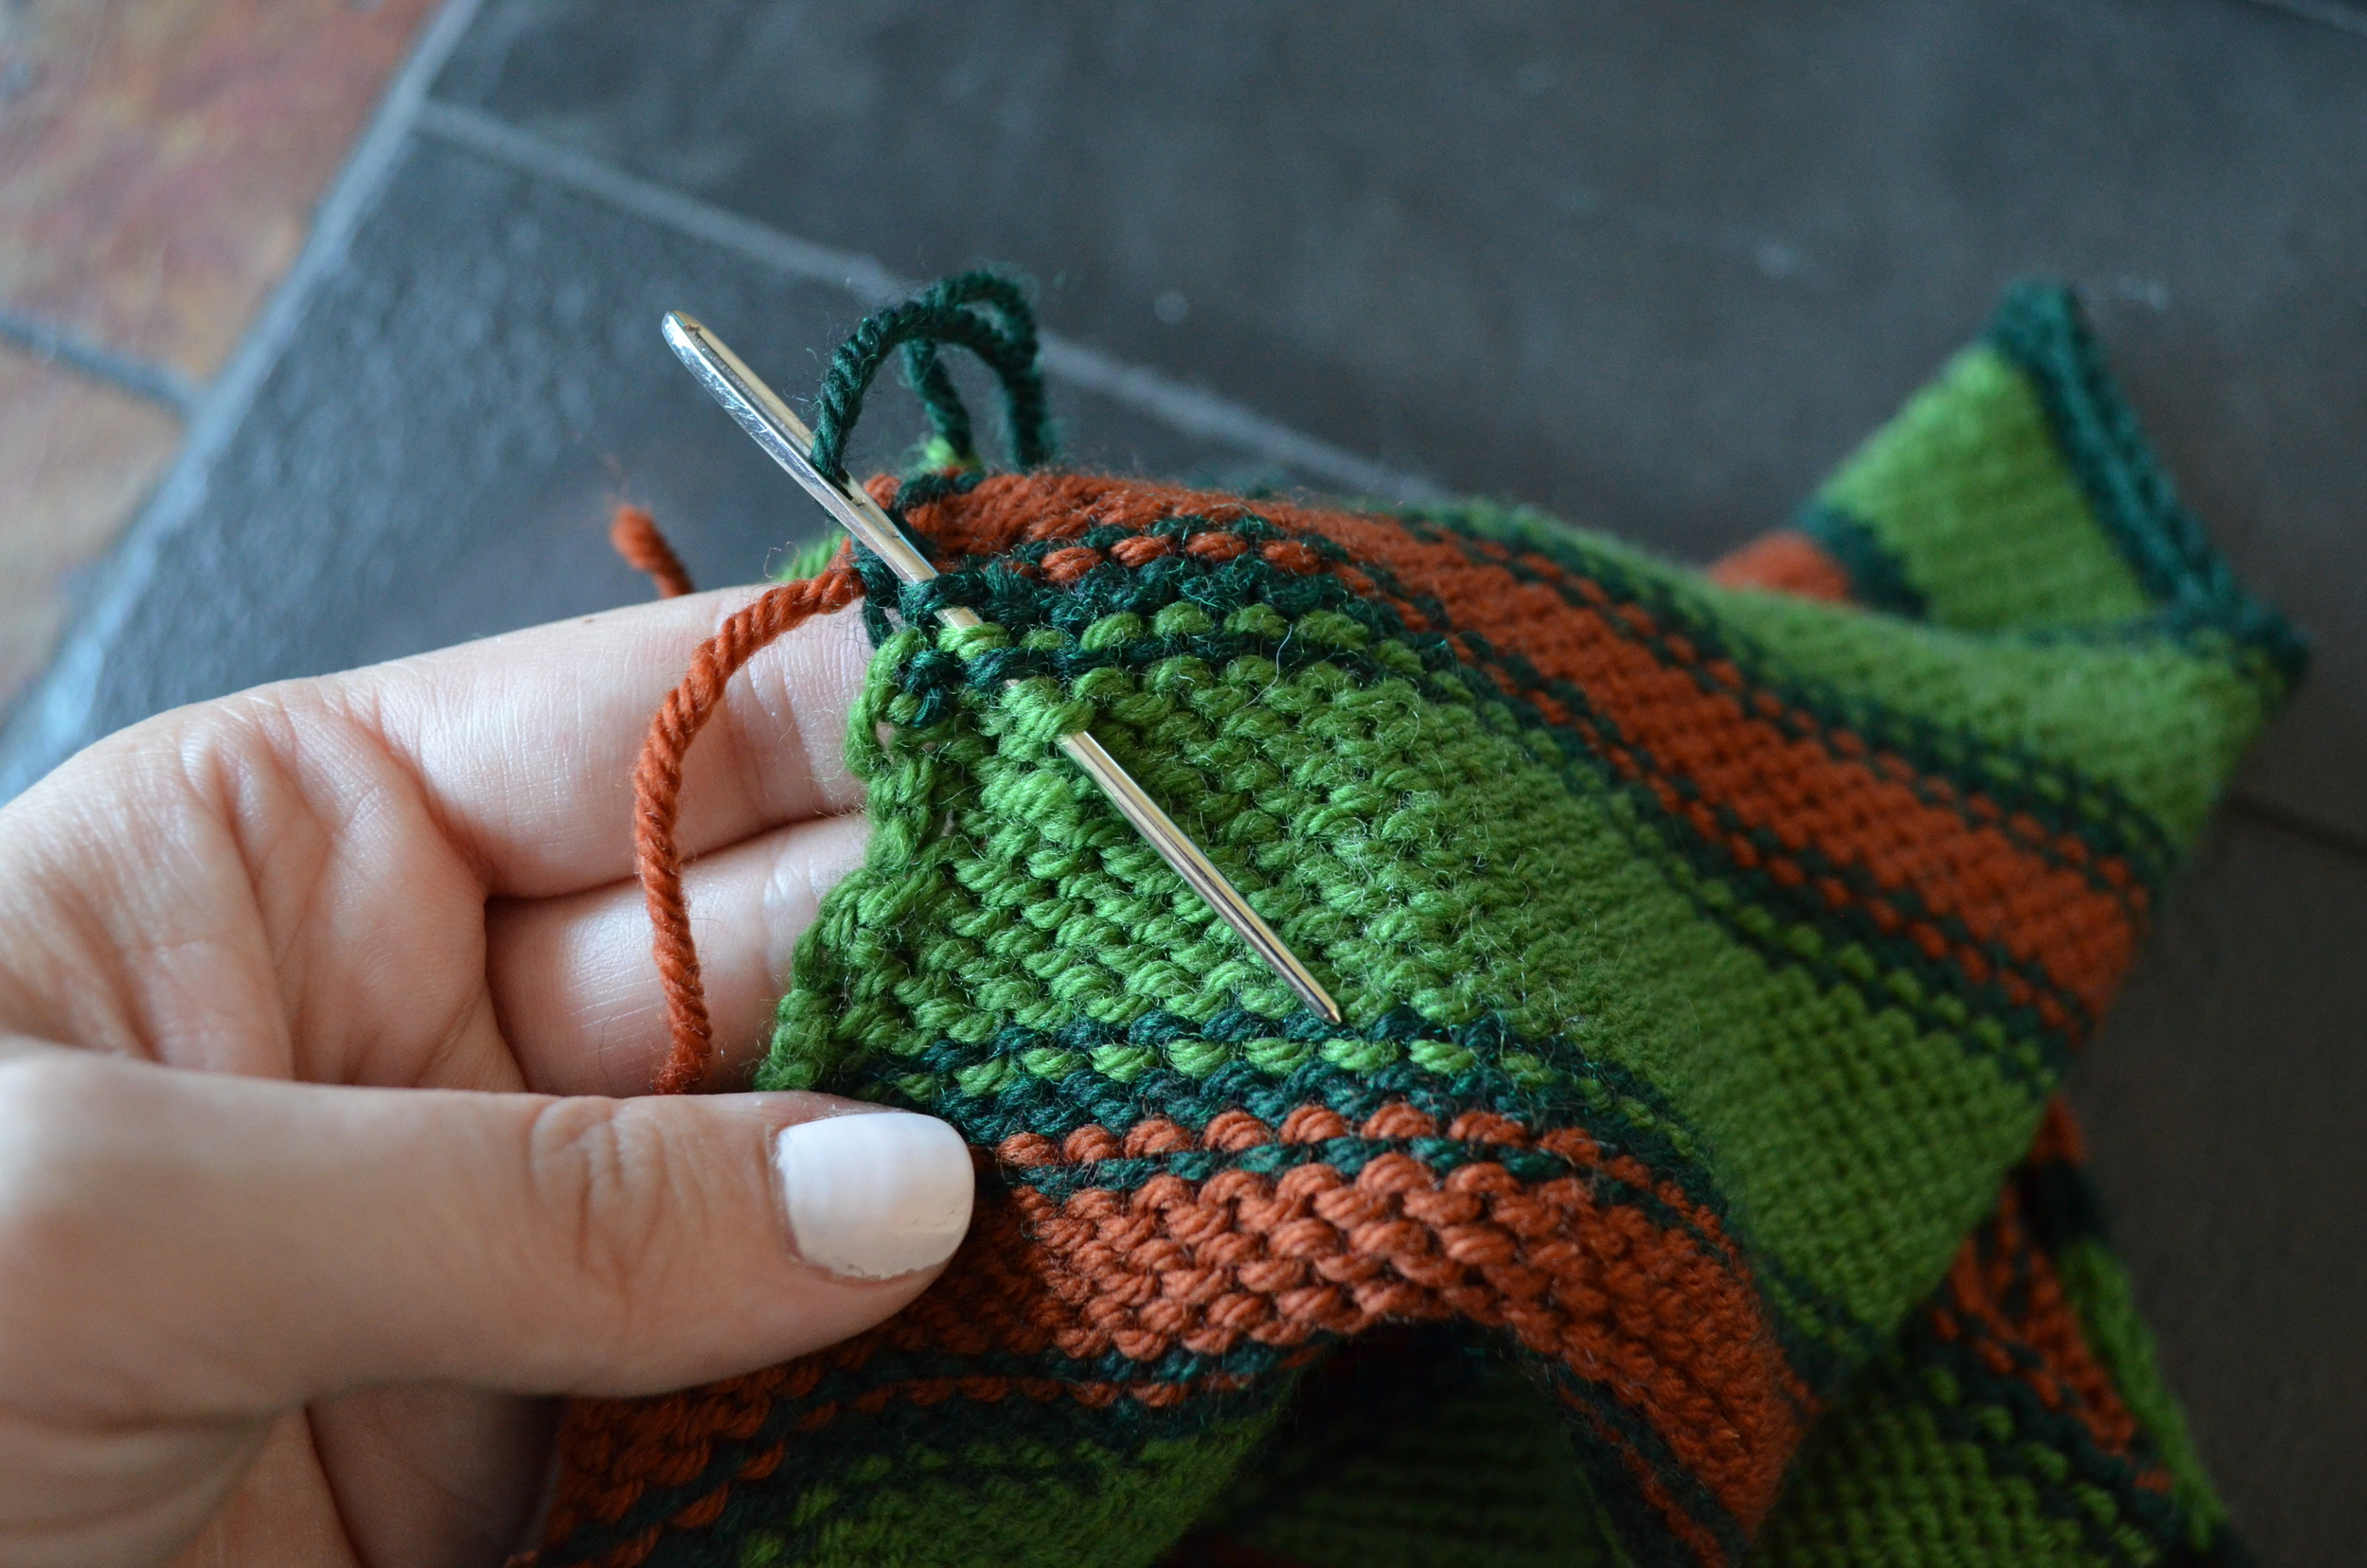 weaving in the ends on a knitting project / warporweft.com